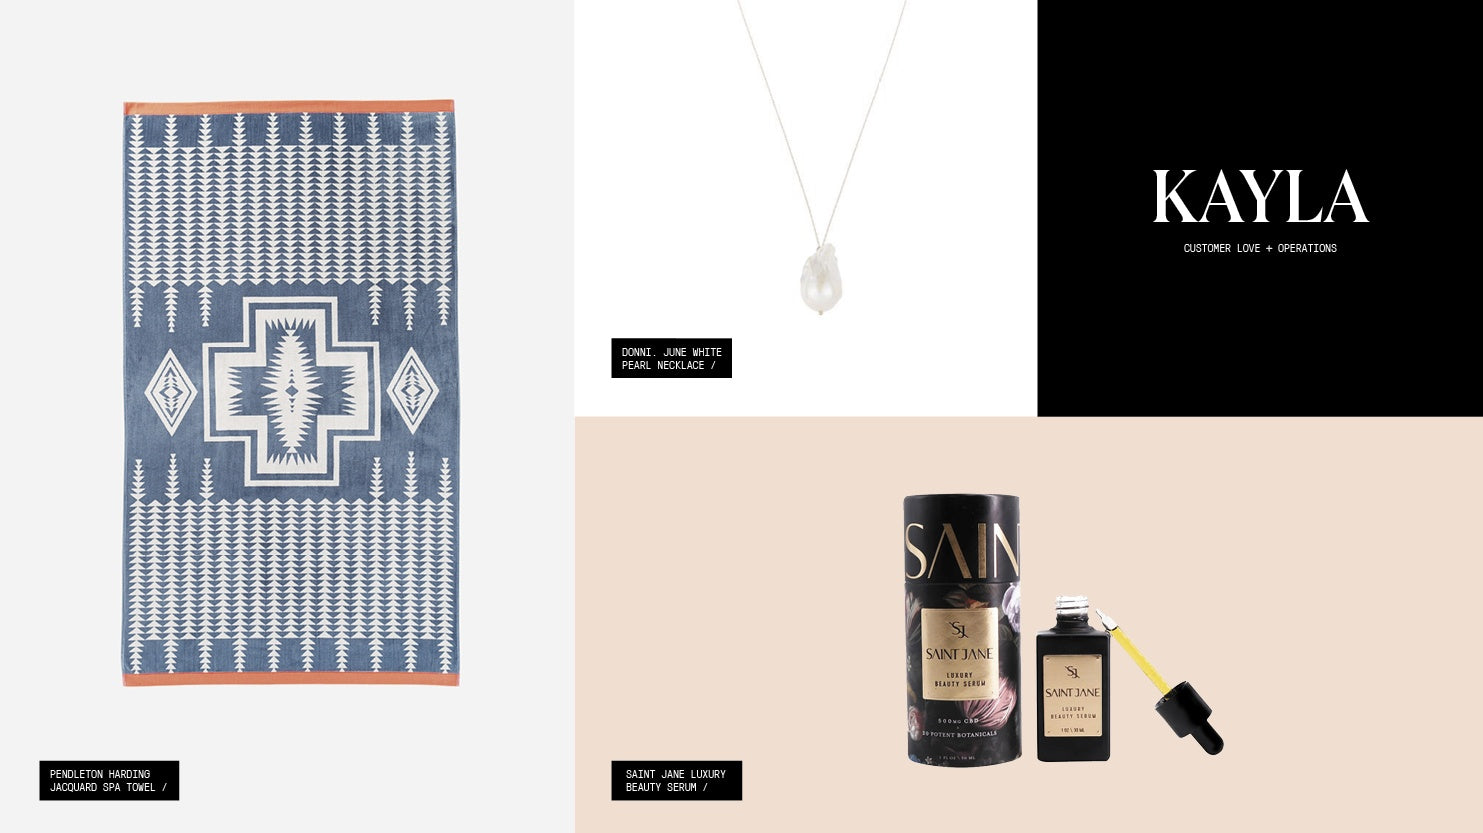 A roundup of gift picks including a beach towel, a natural pearl necklace, and a CBD-infused face serum.